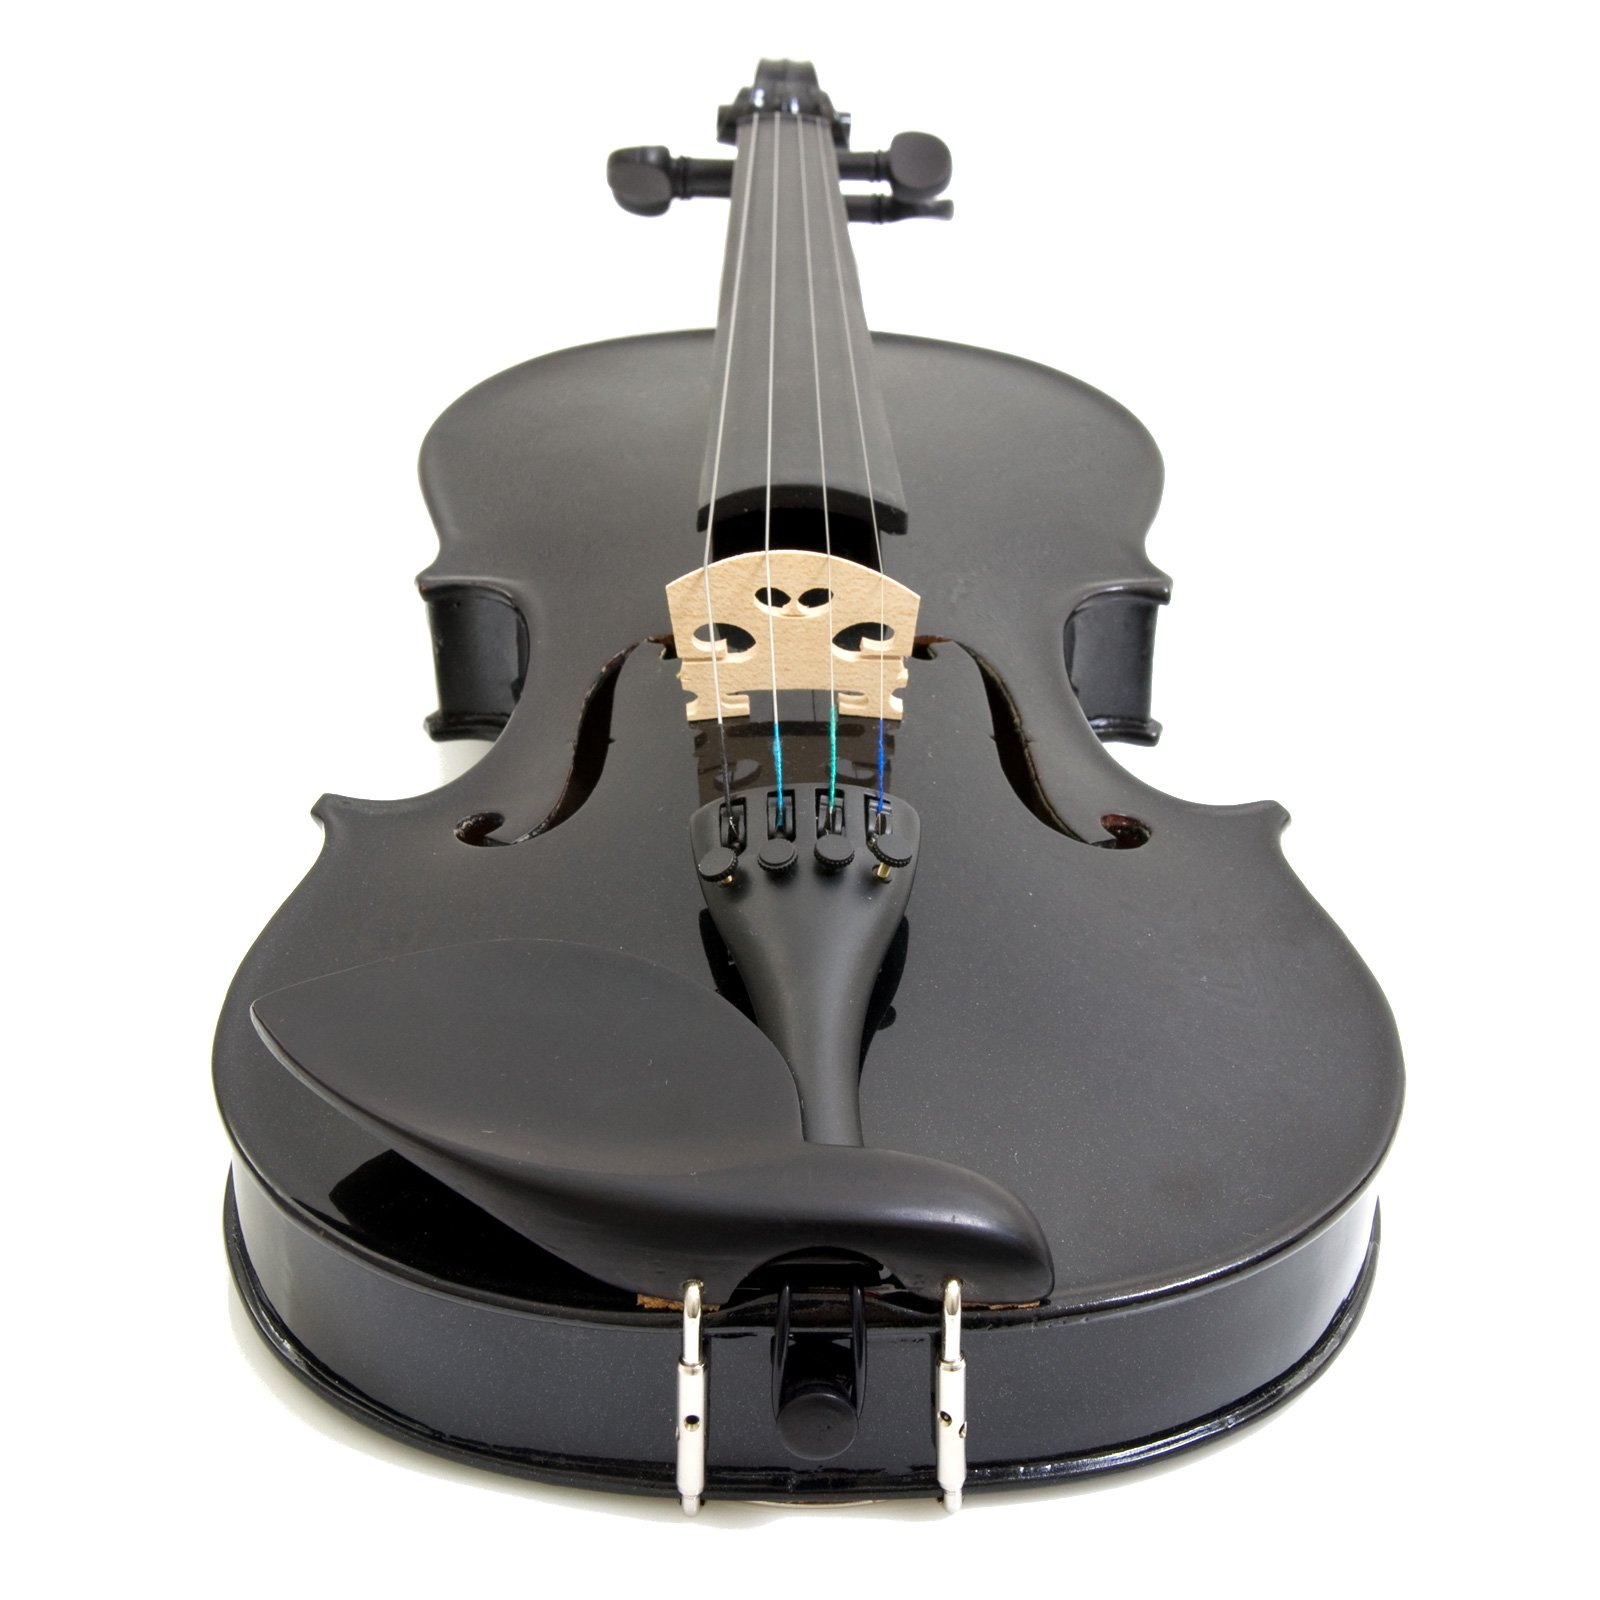 Mendini 4/4 MV-Black Solid Wood Violin with Tuner, Lesson Book, Shoulder Rest, Extra Strings, Bow and Case, Metallic Black Full Size by Mendini by Cecilio (Image #5)